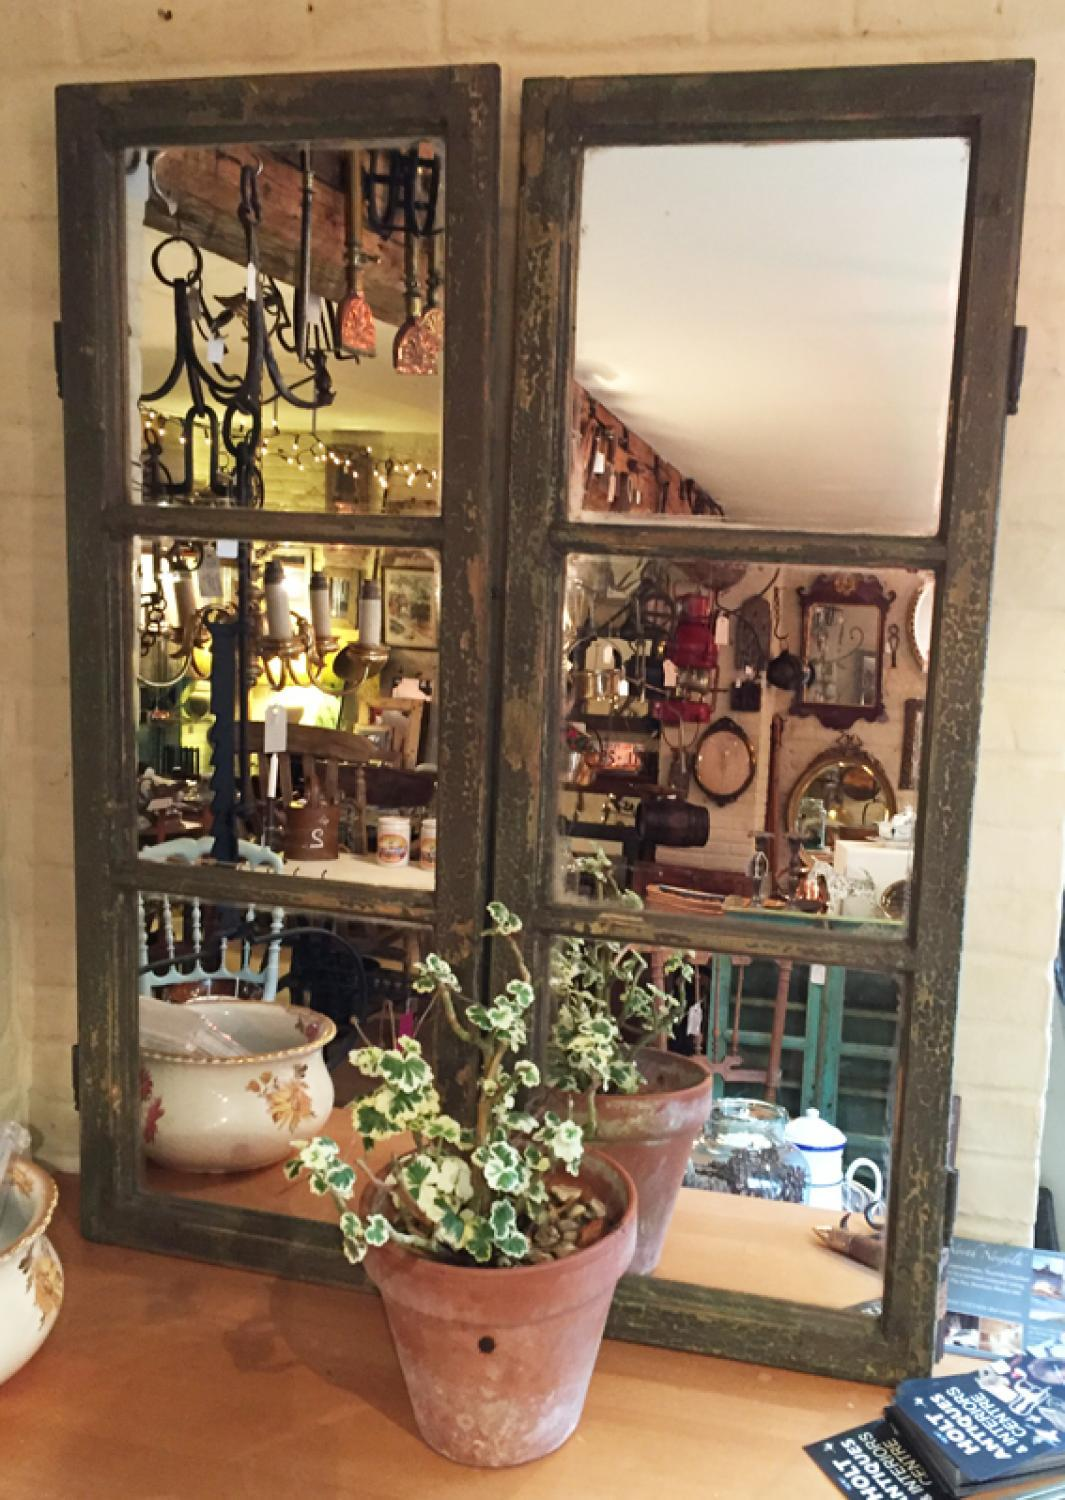 Old French Mirrored Windows in Original Green